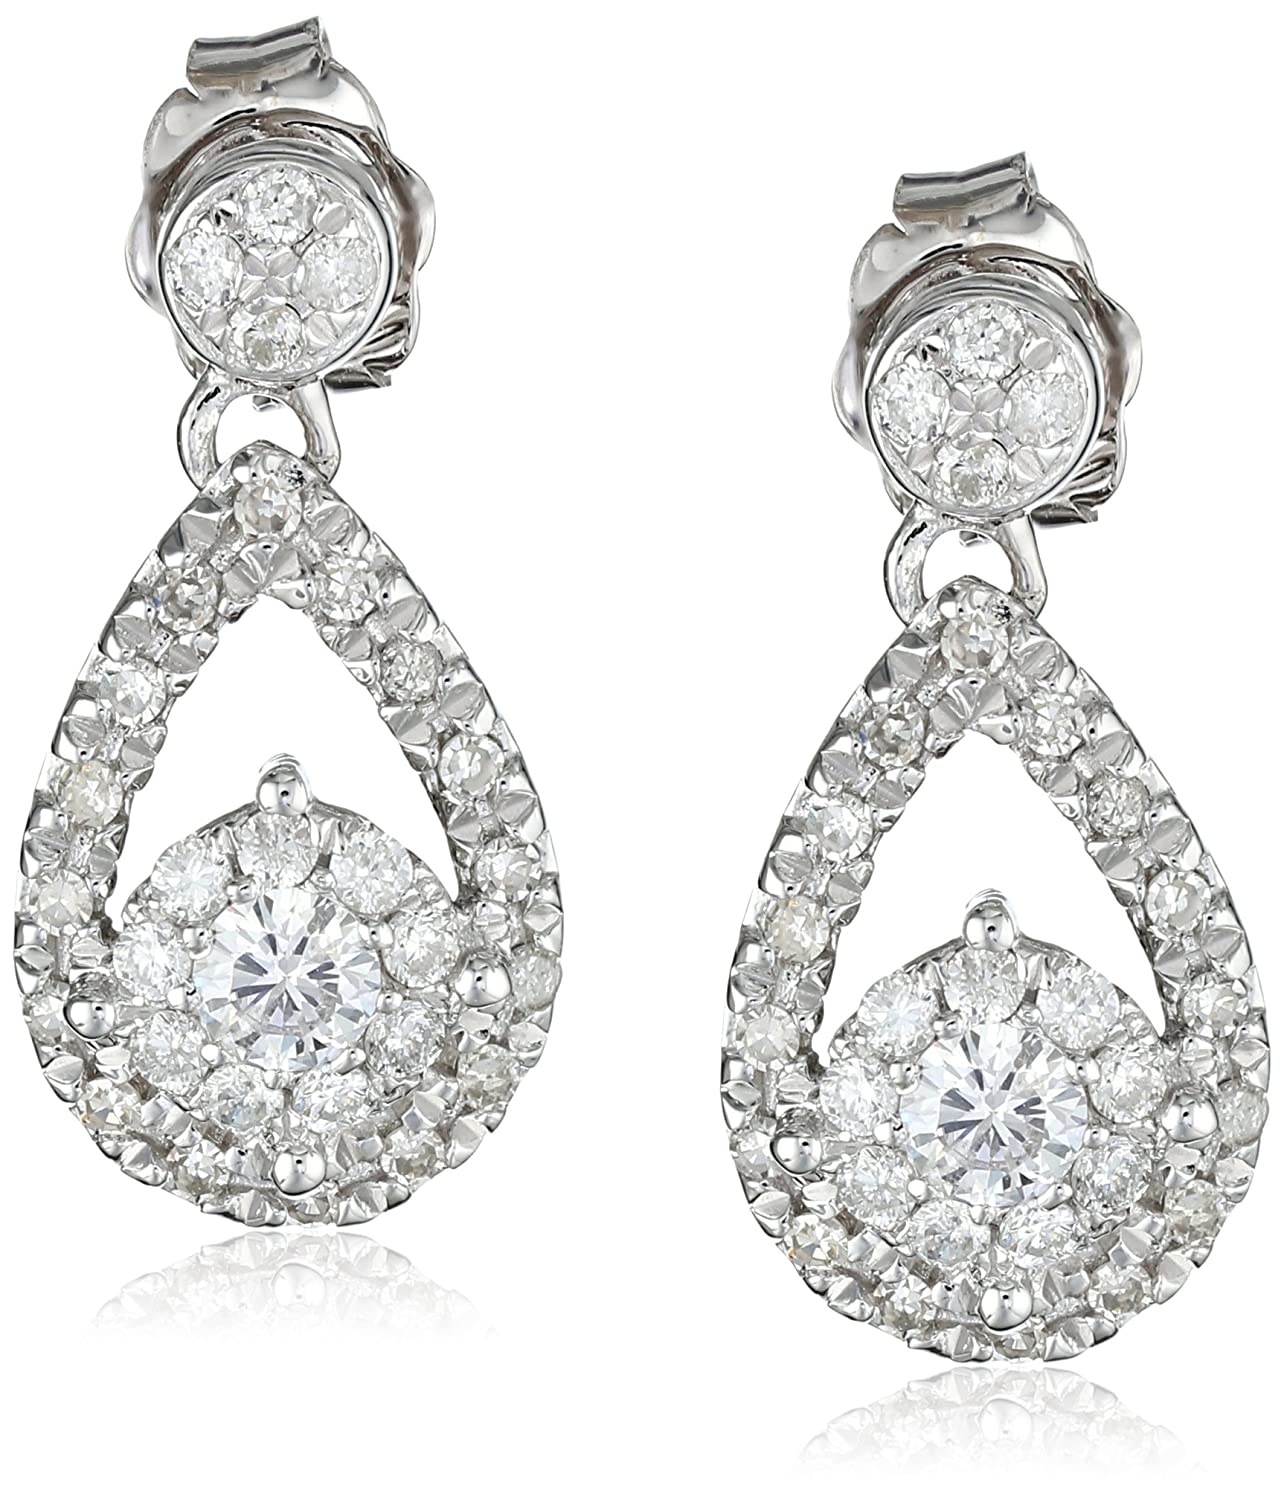 solitaire in op co platinum usm tiffany ed m earrings diamond jewelry